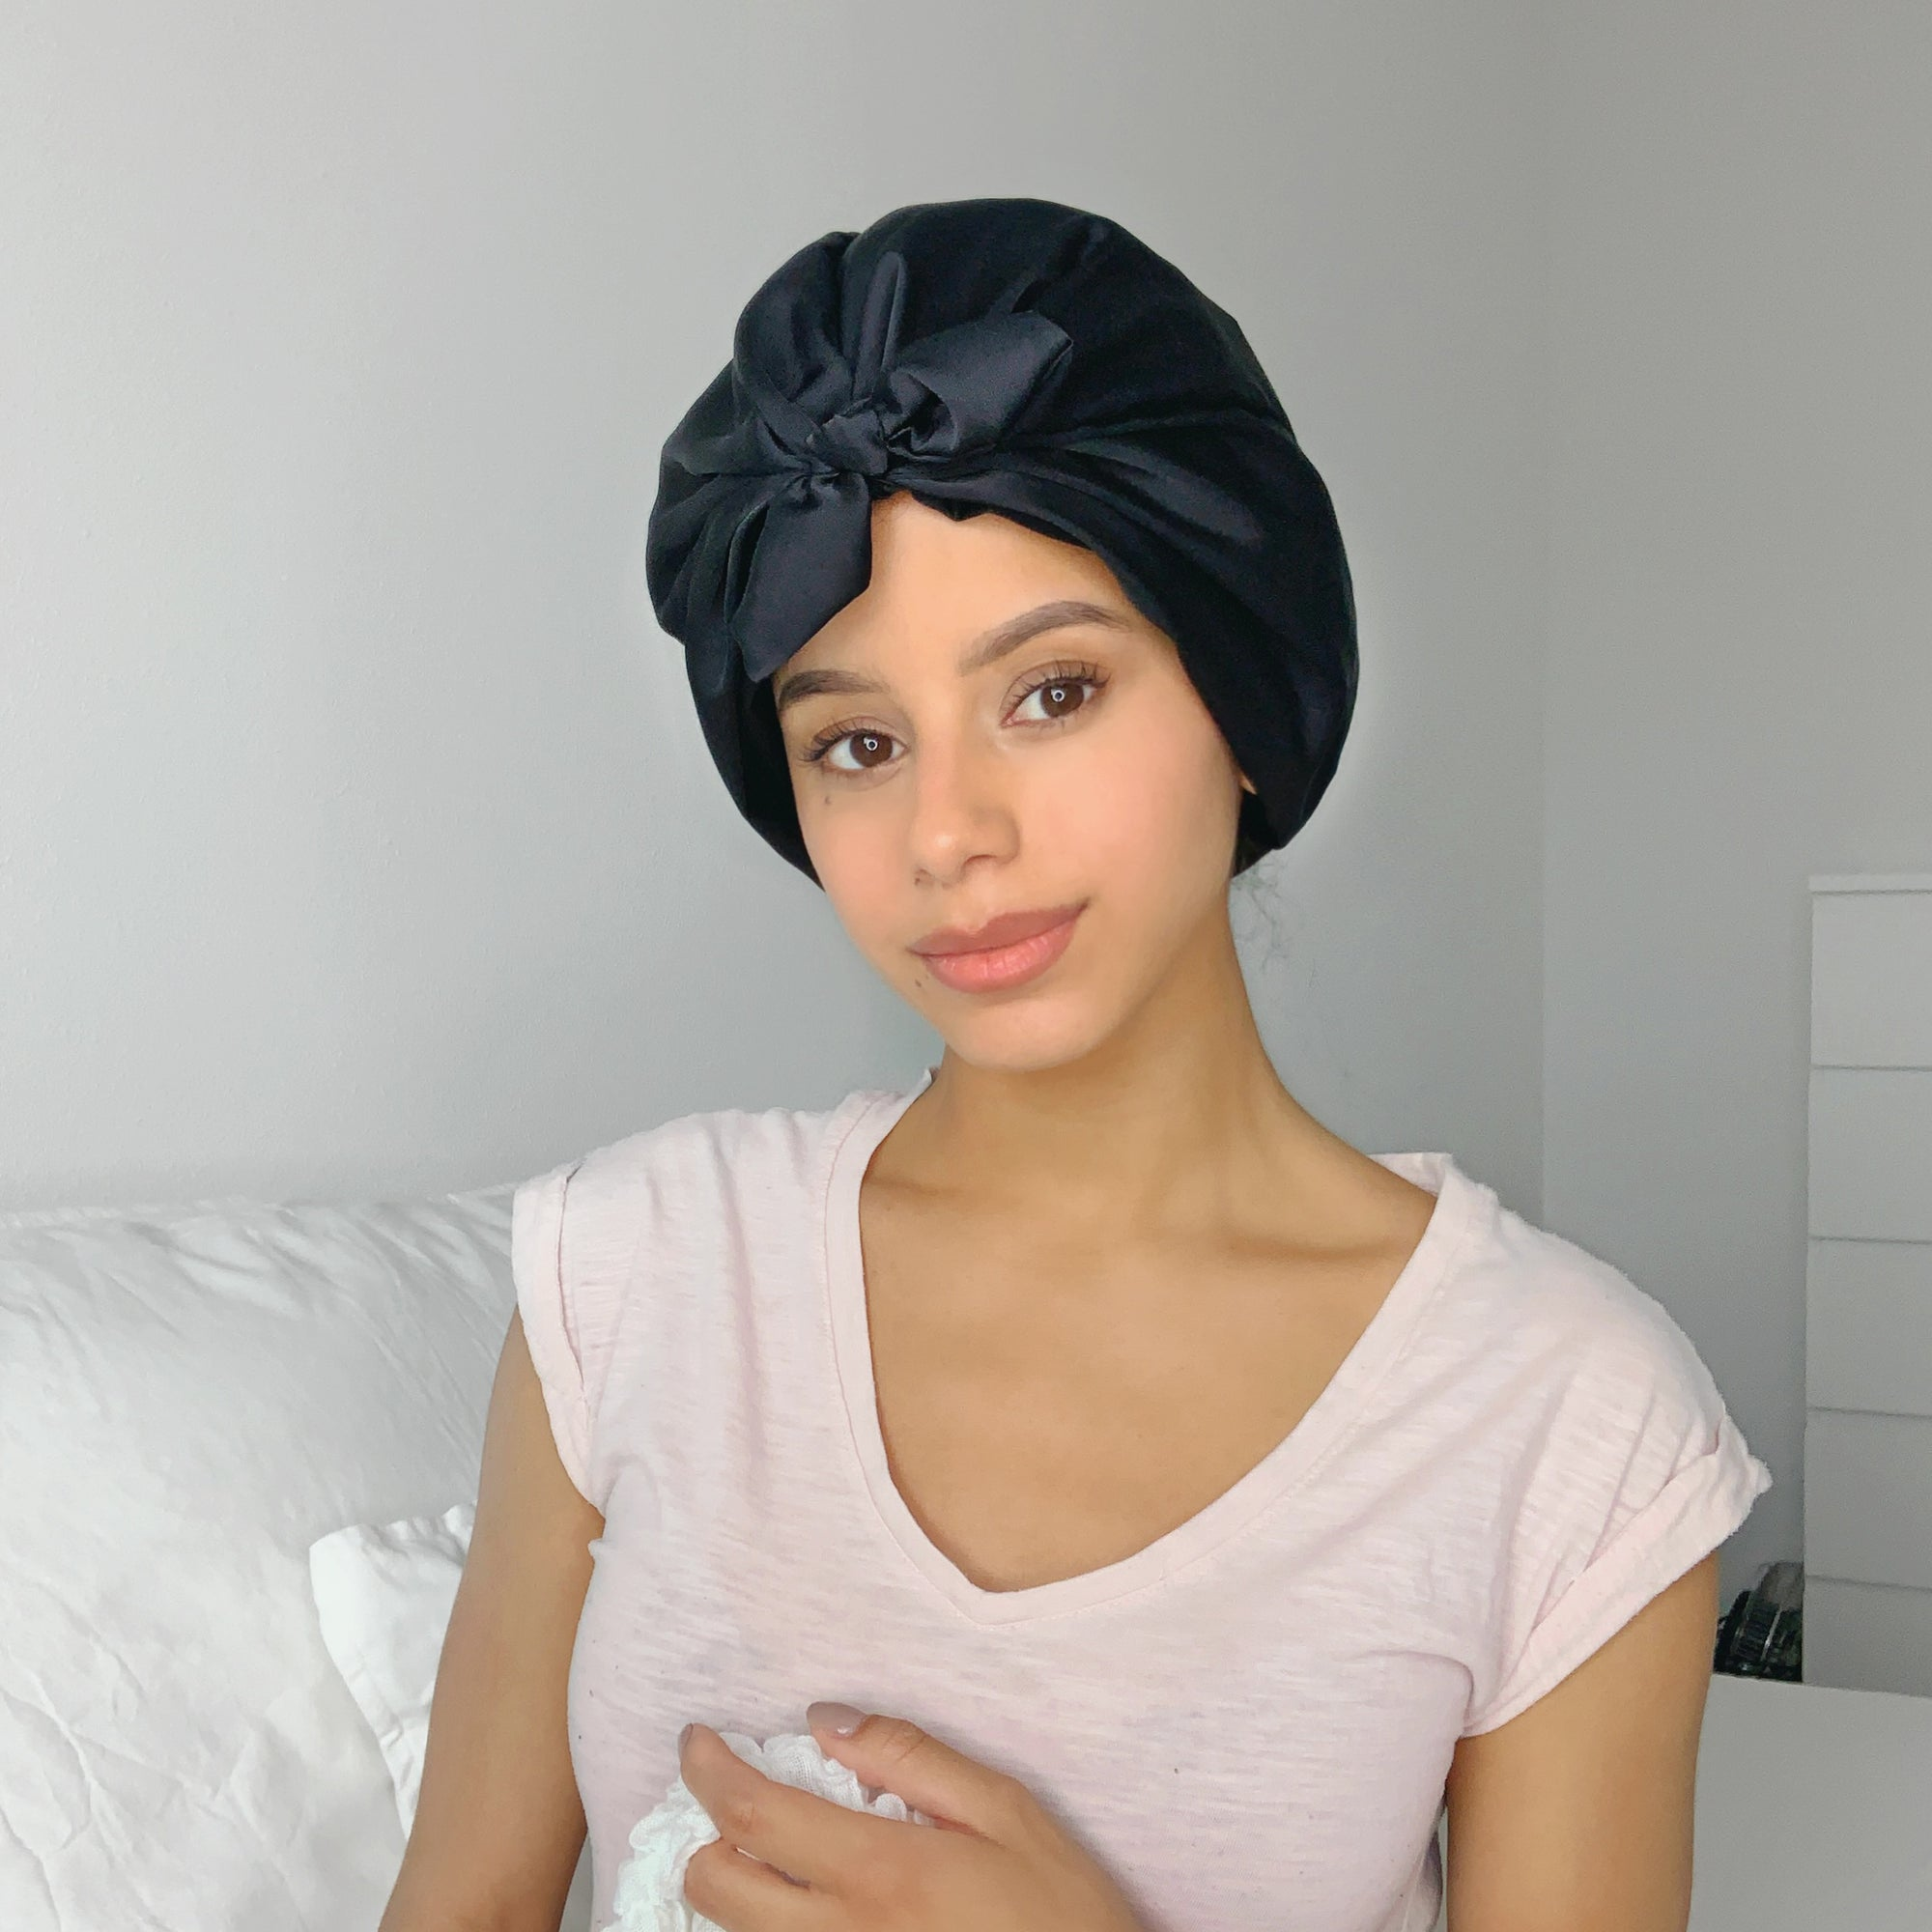 Only Curls Satin Sleep Turban - Mint - Only Curls